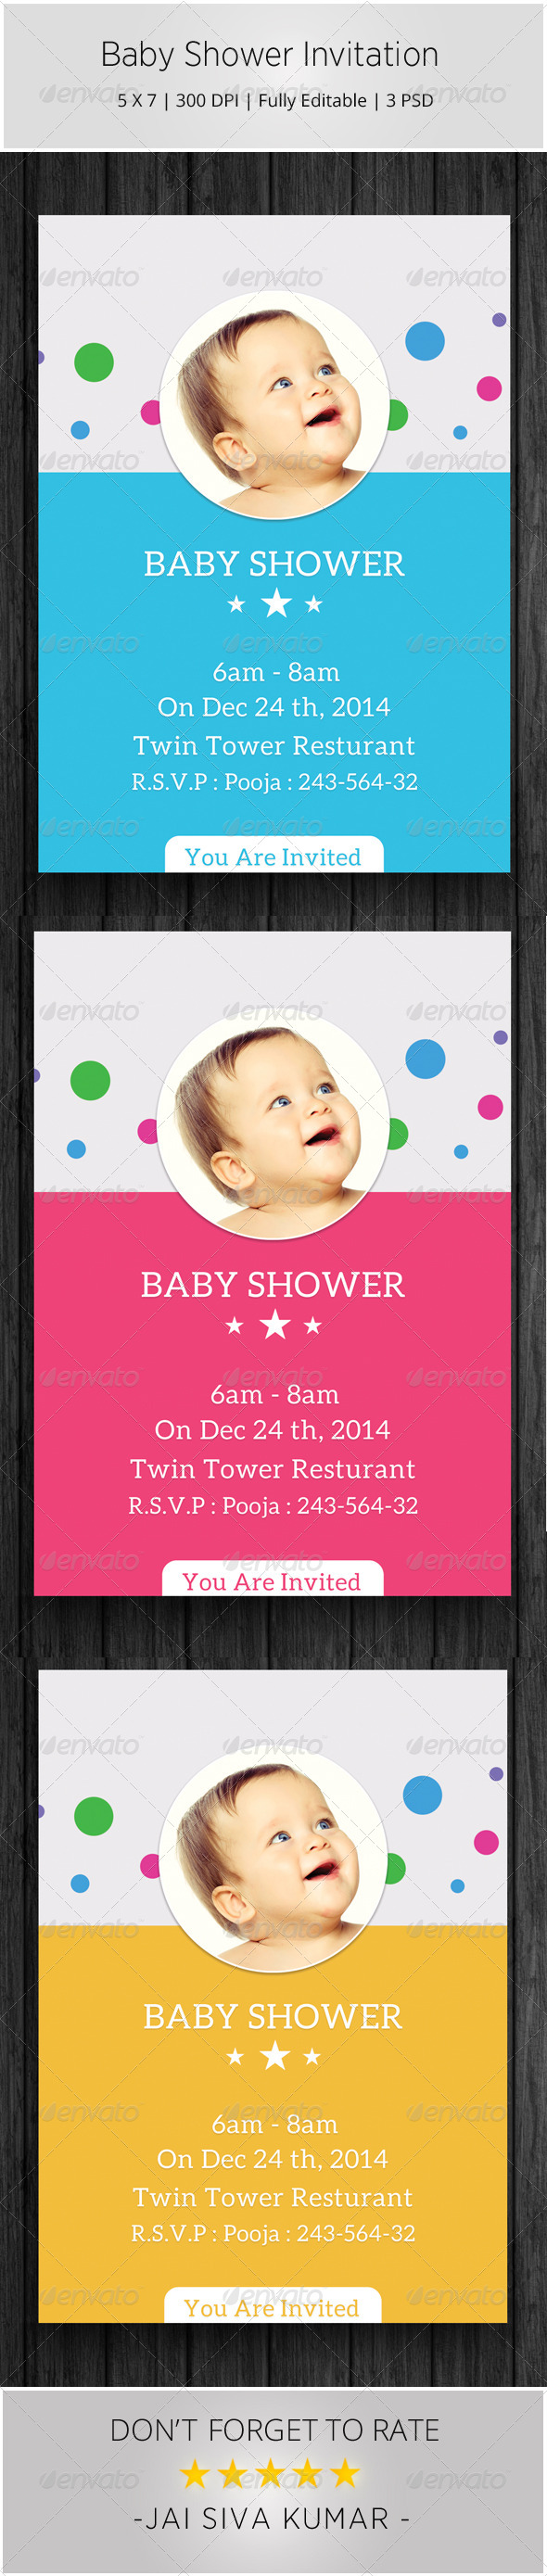 GraphicRiver Baby Shower Invitation Templates 6584435